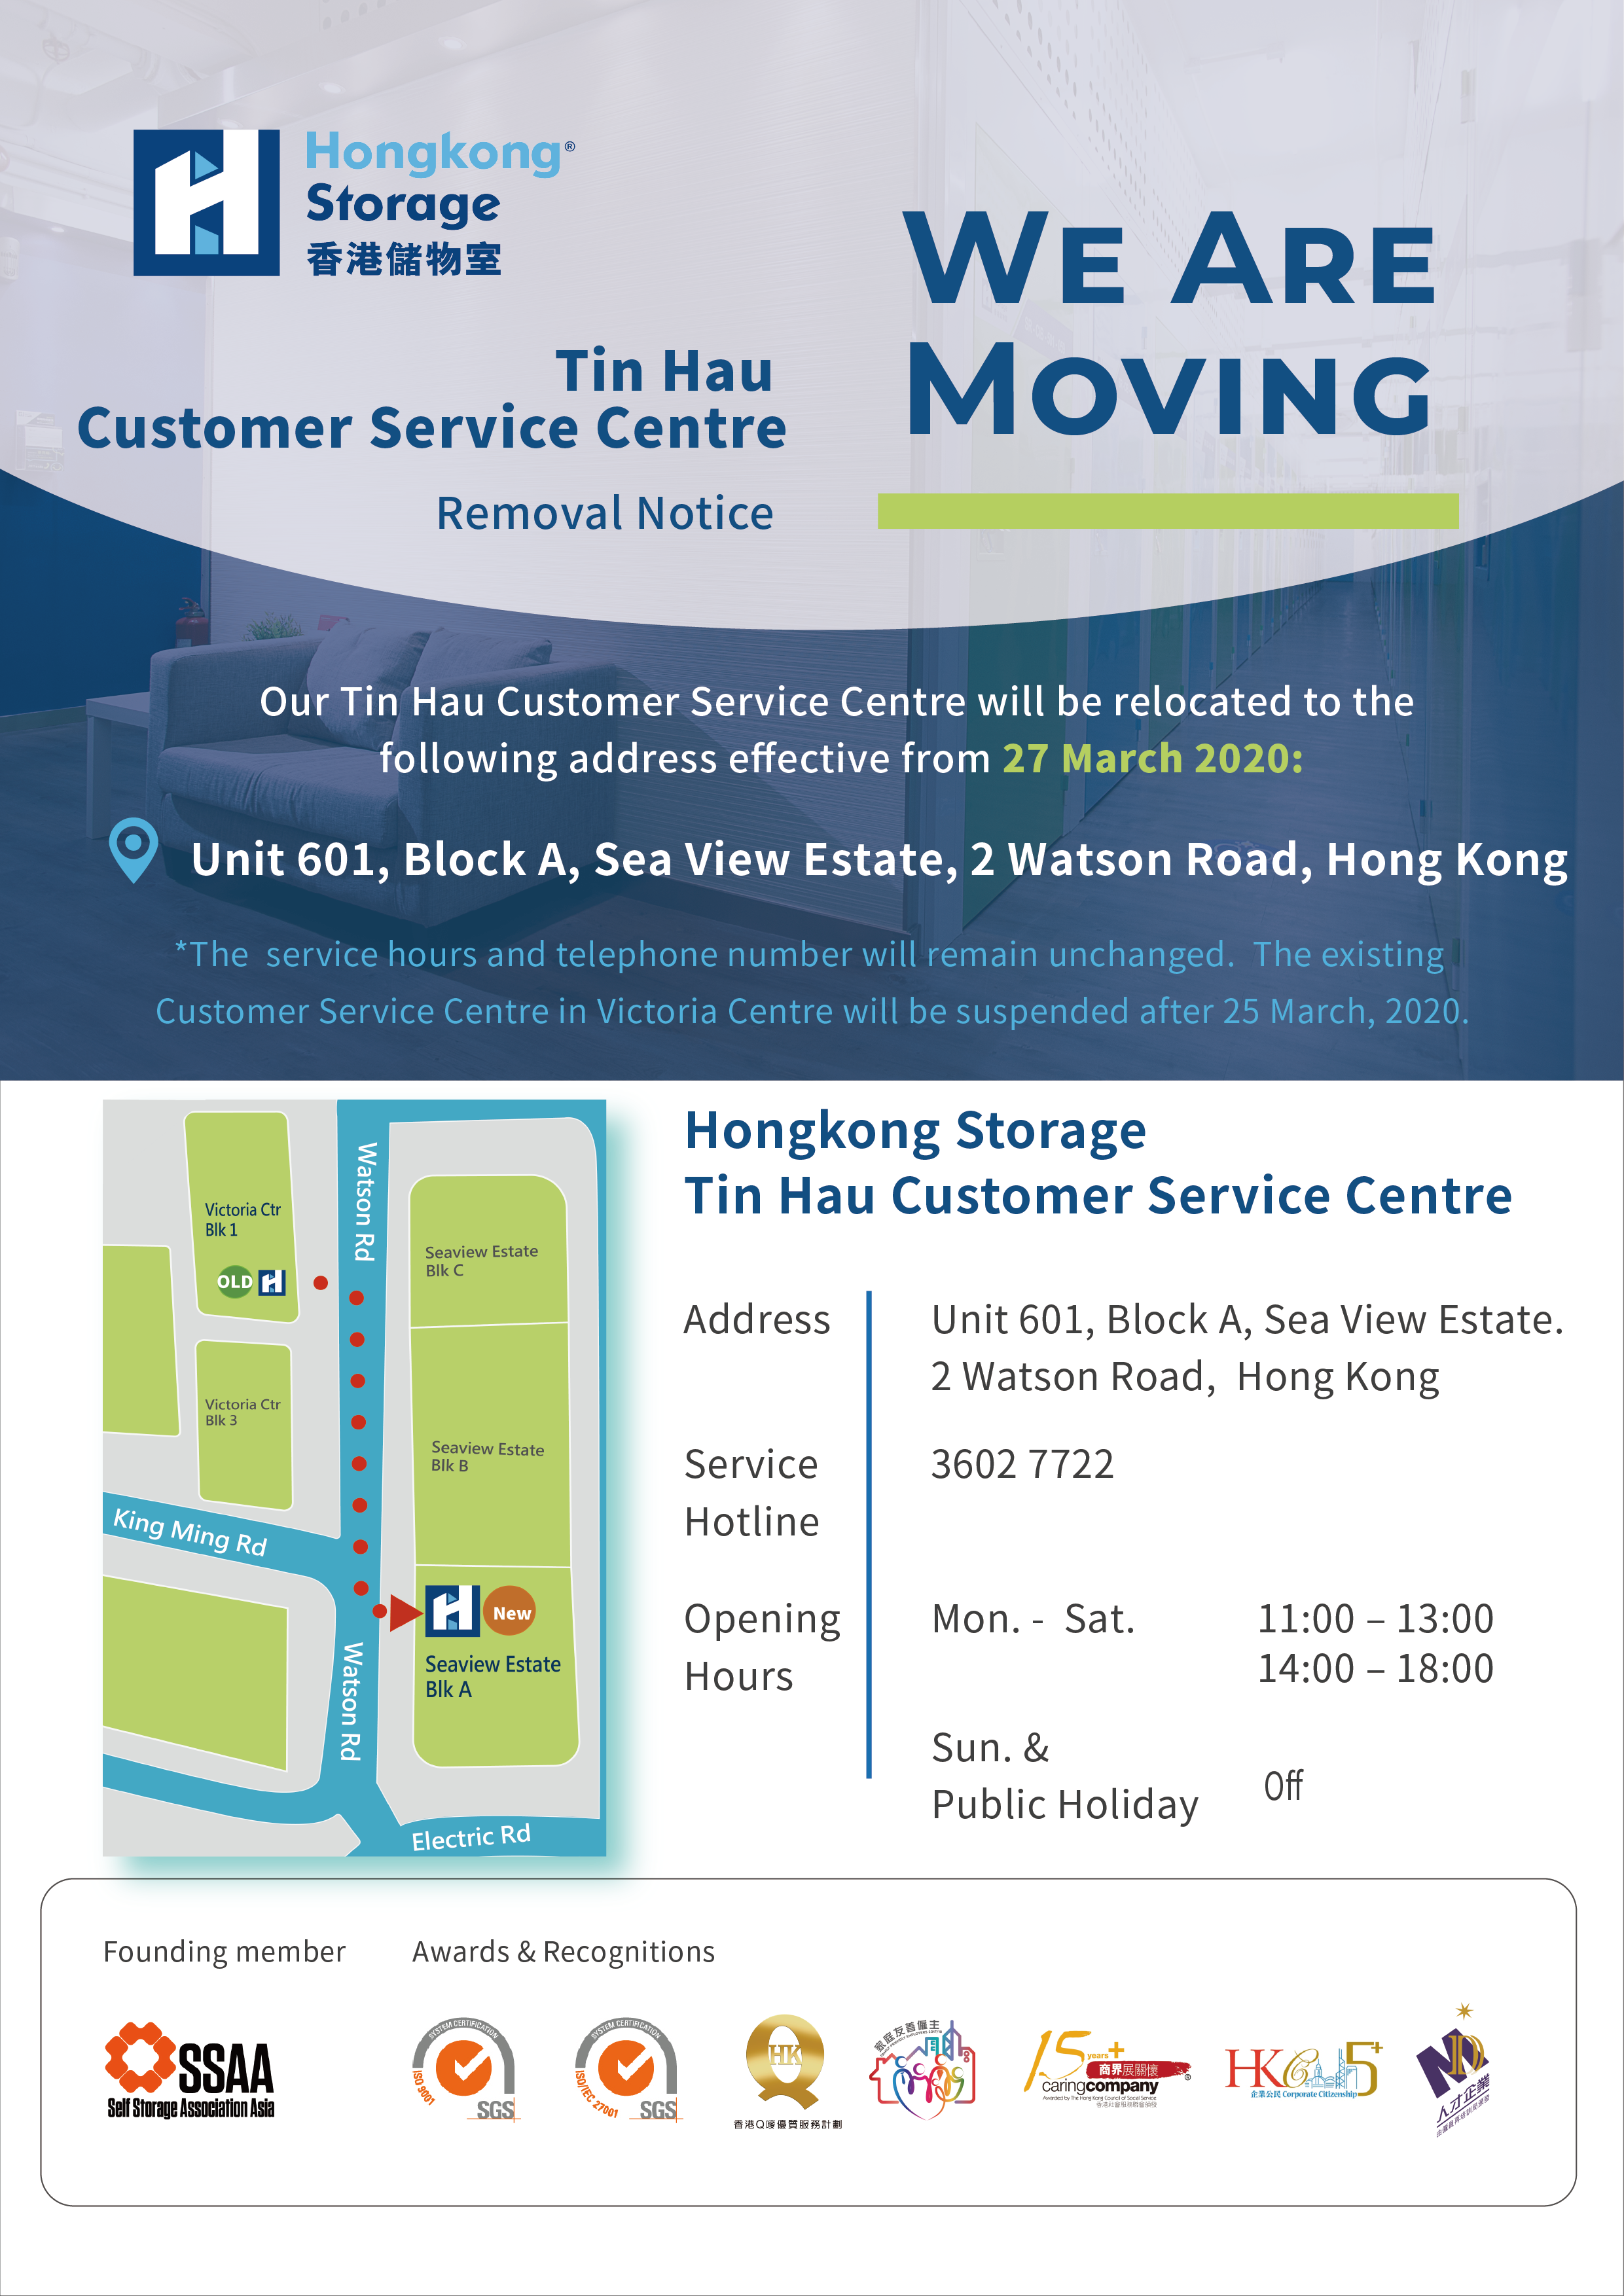 Removal Notice – Tin Hau Customer Service Centre